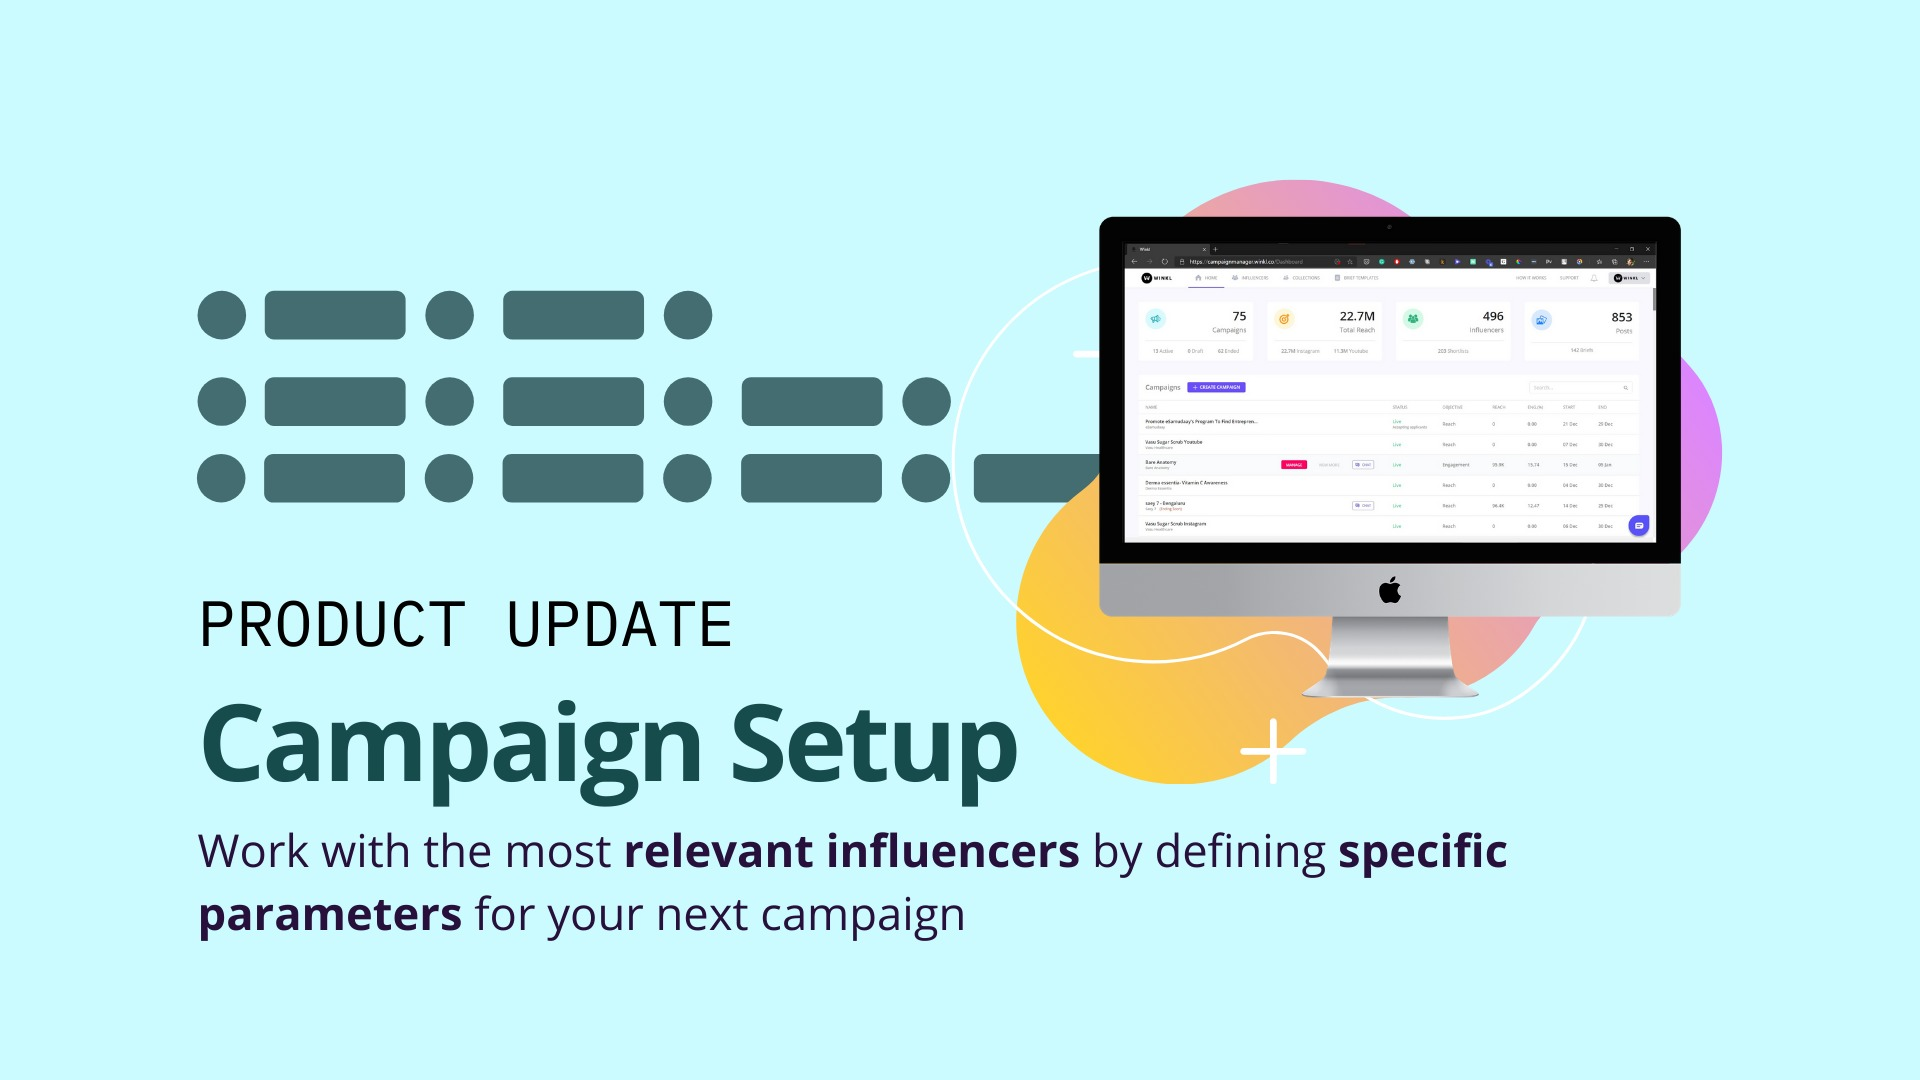 Work with the most relevant influencers by defining specific parameters for your next campaign image